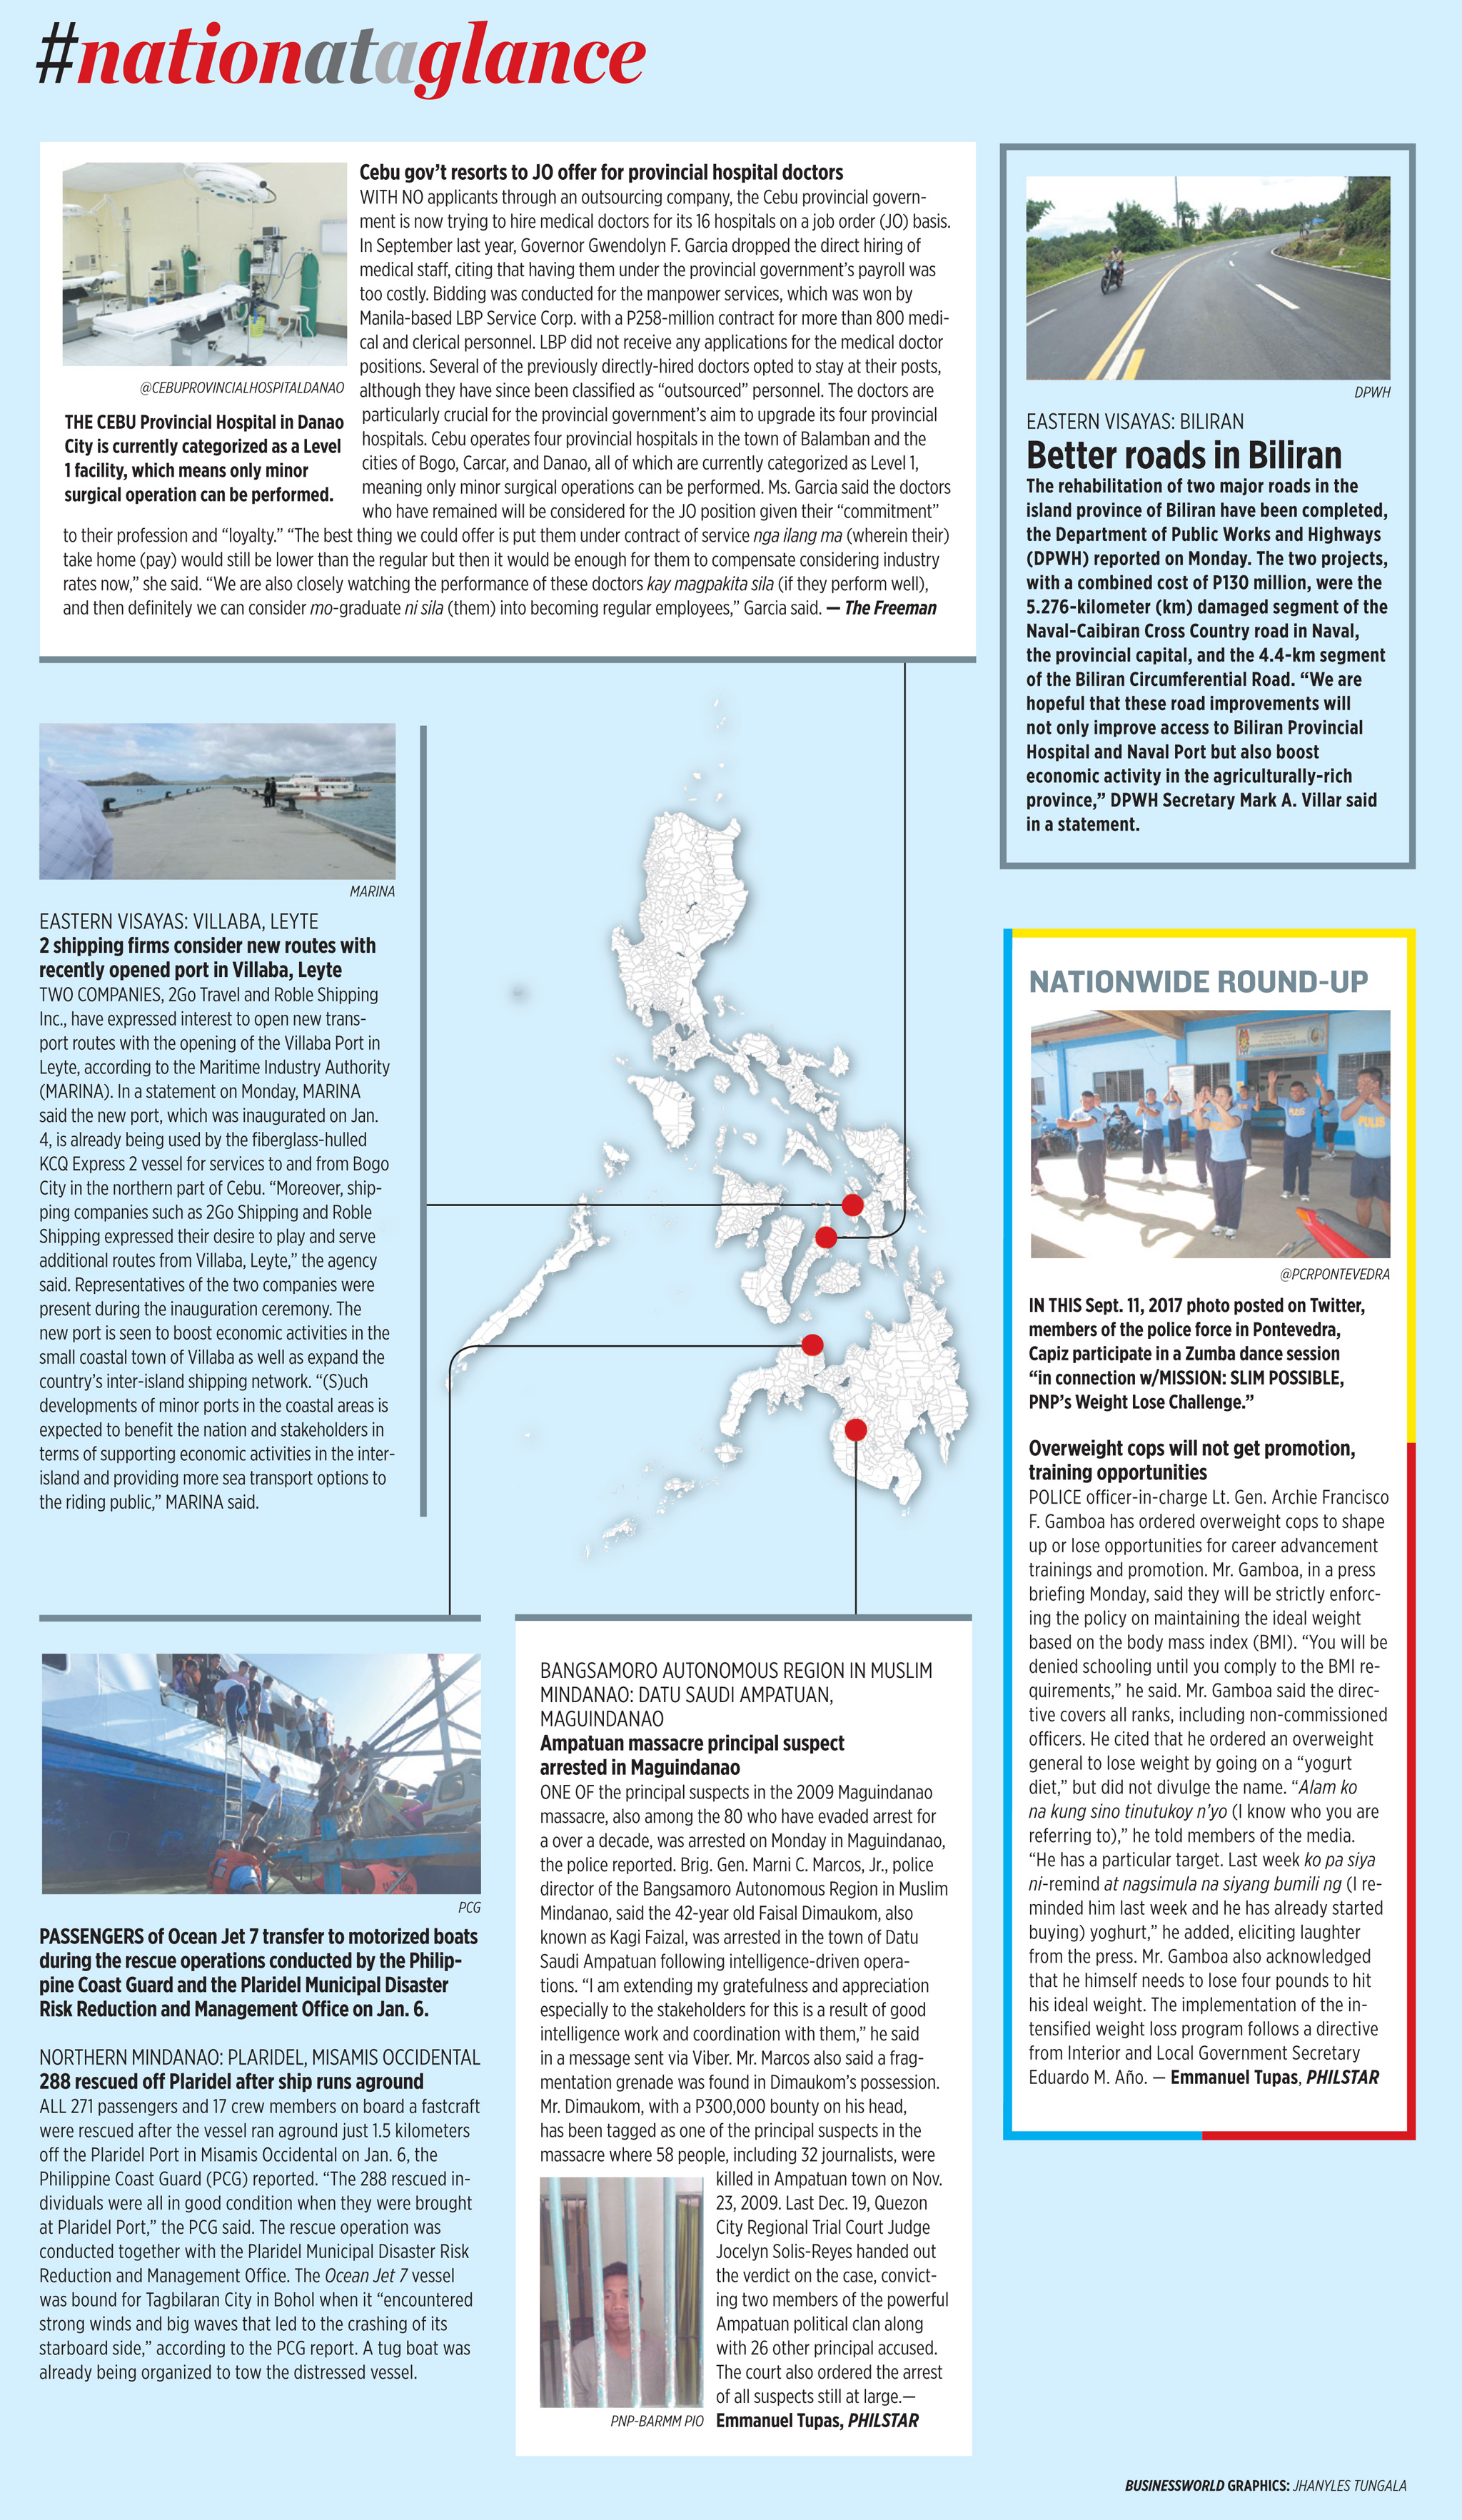 Nation at a Glance — (01/07/20)